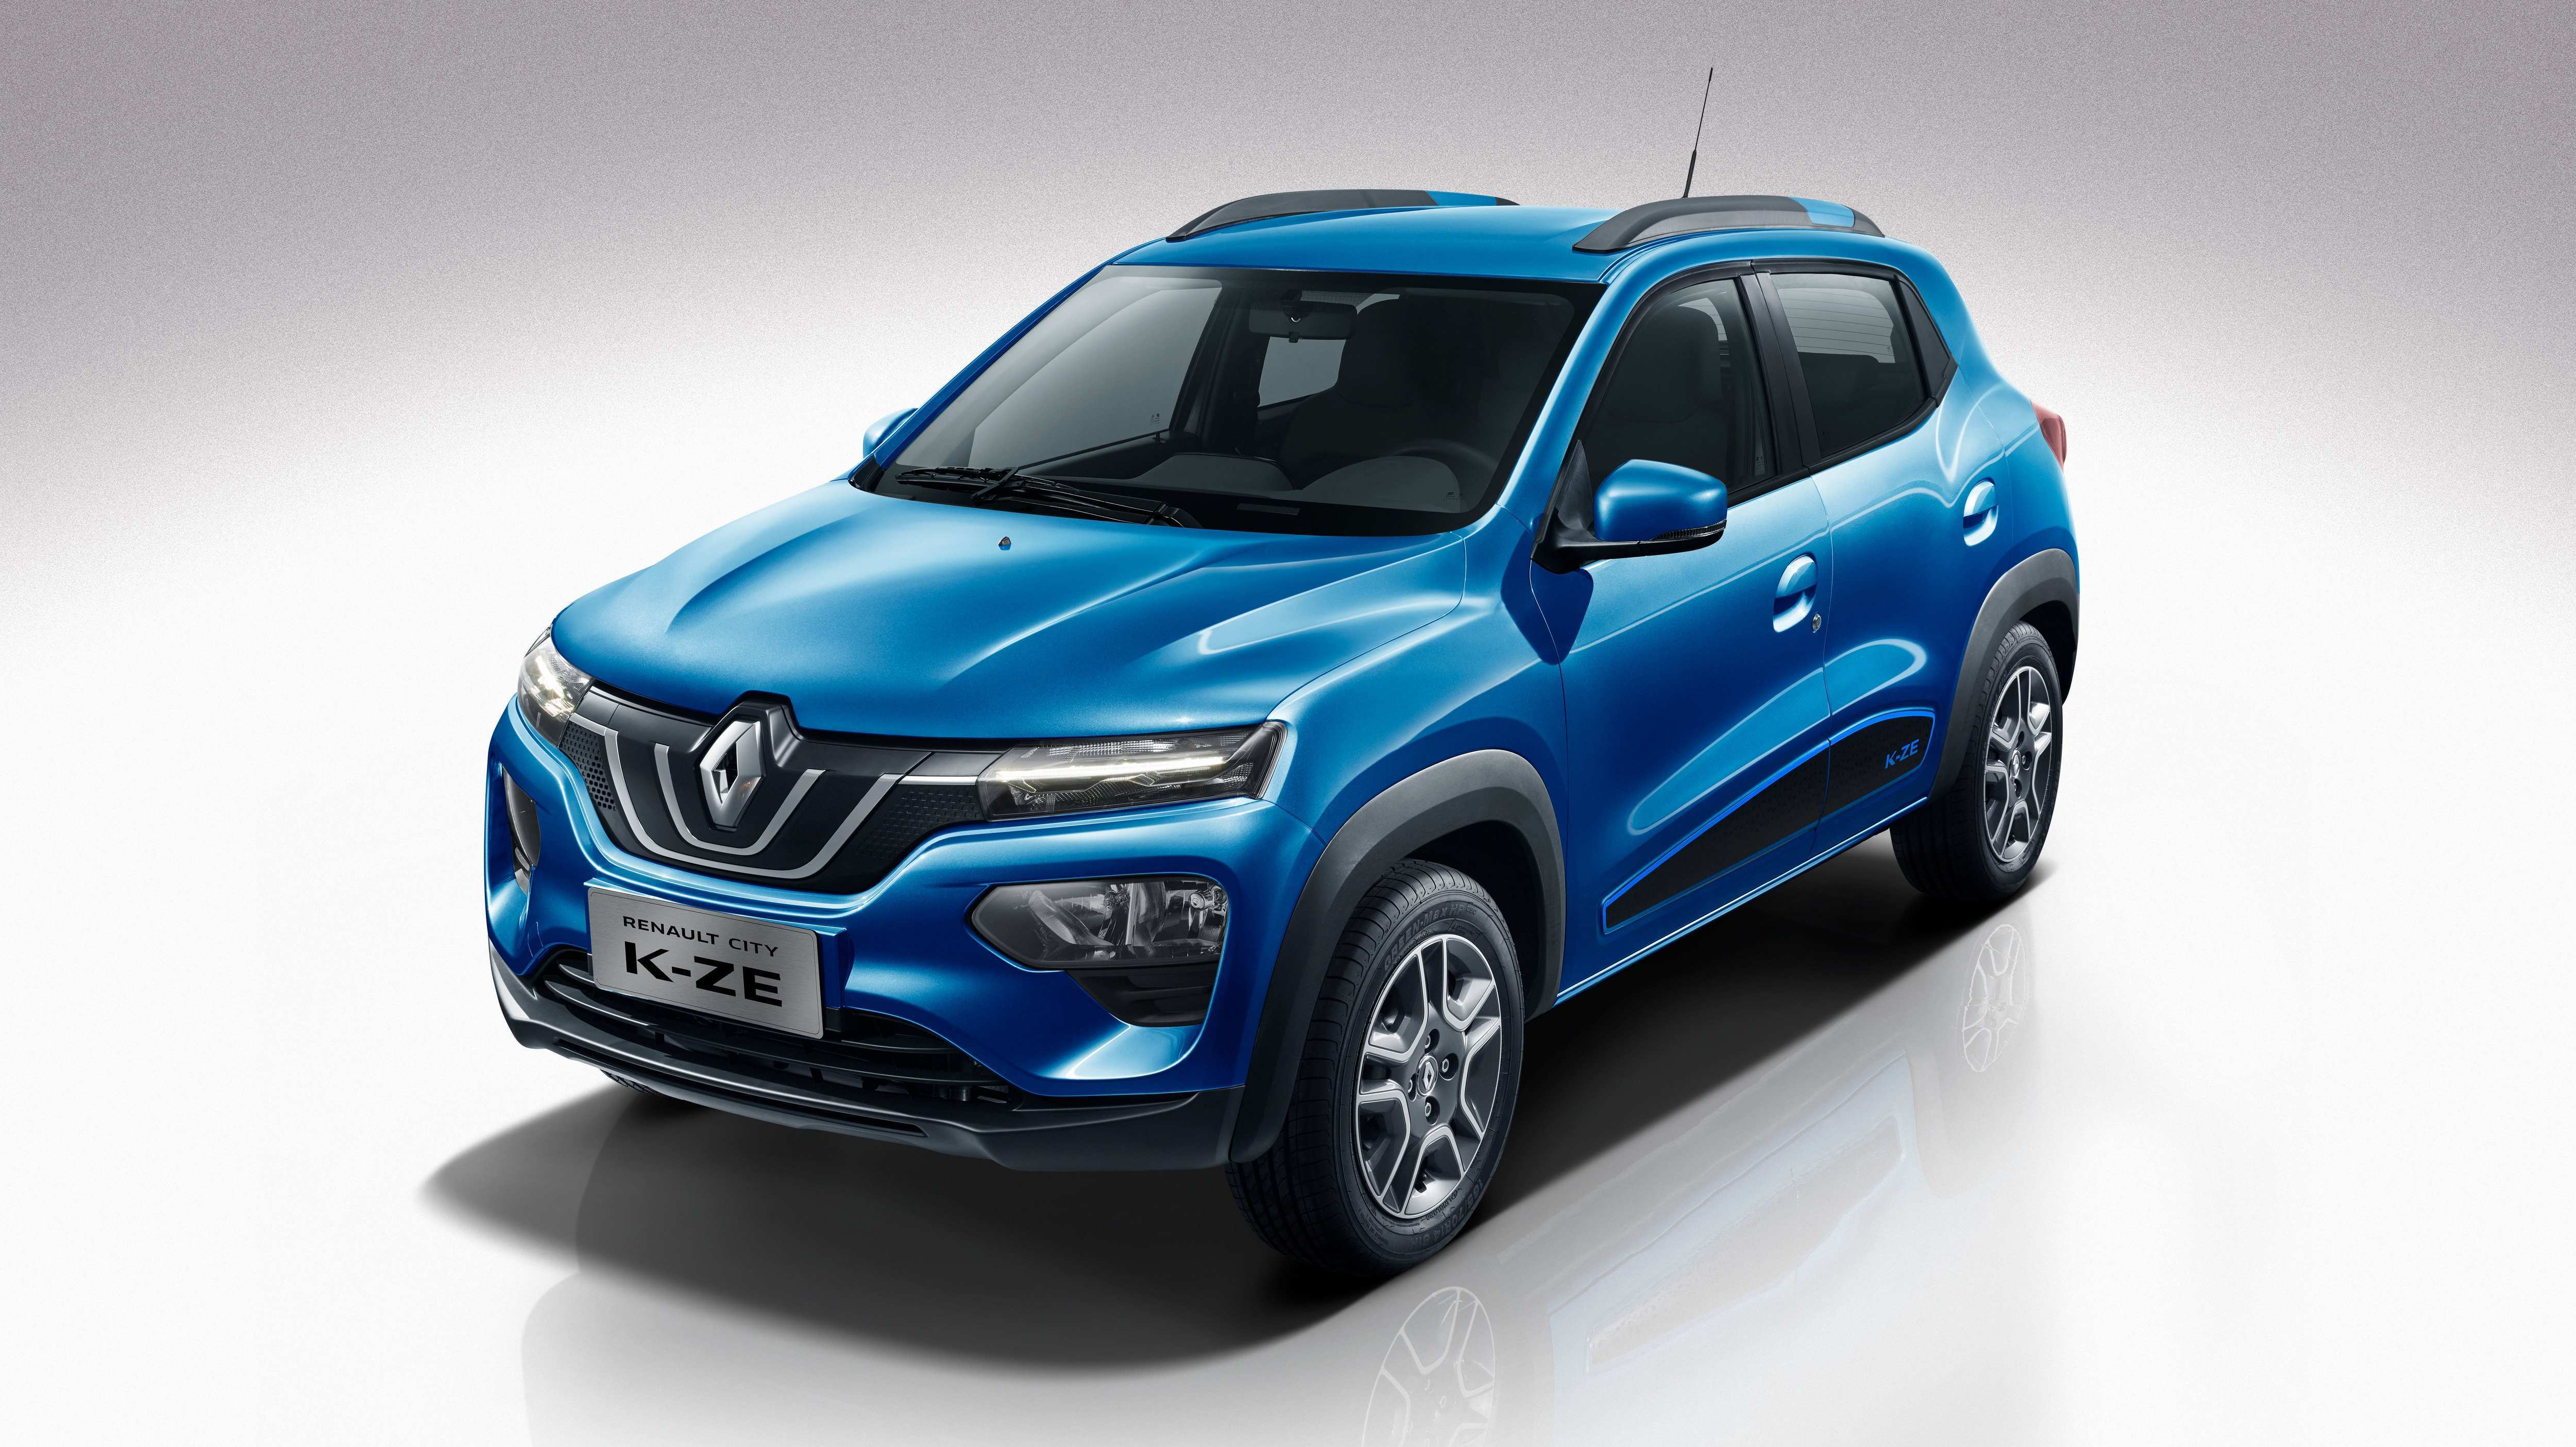 39 The Best Renault Electric 2020 Release Date